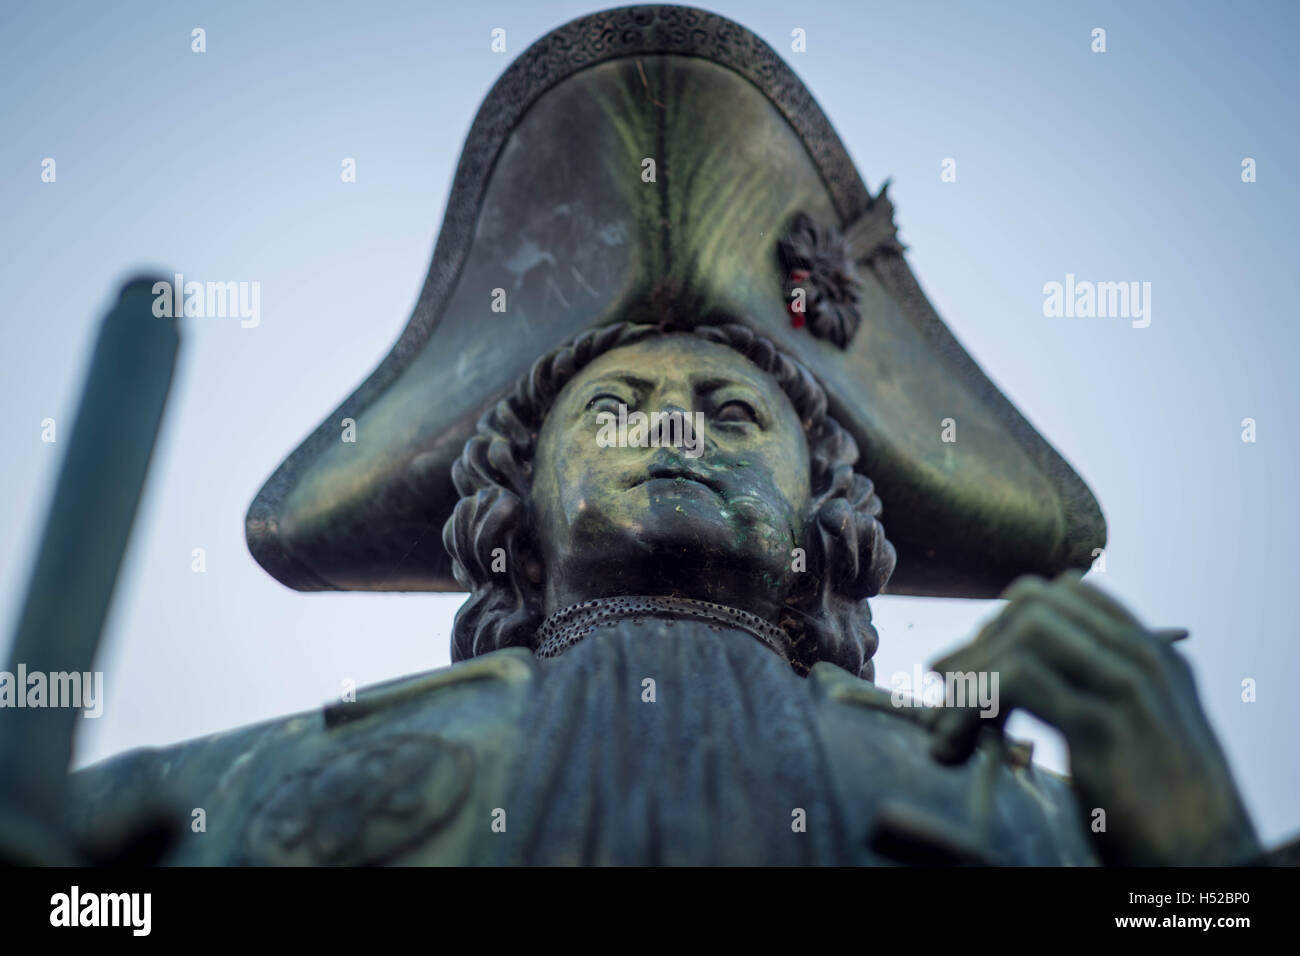 Peter the Great statue in south east London, UK. - Stock Image